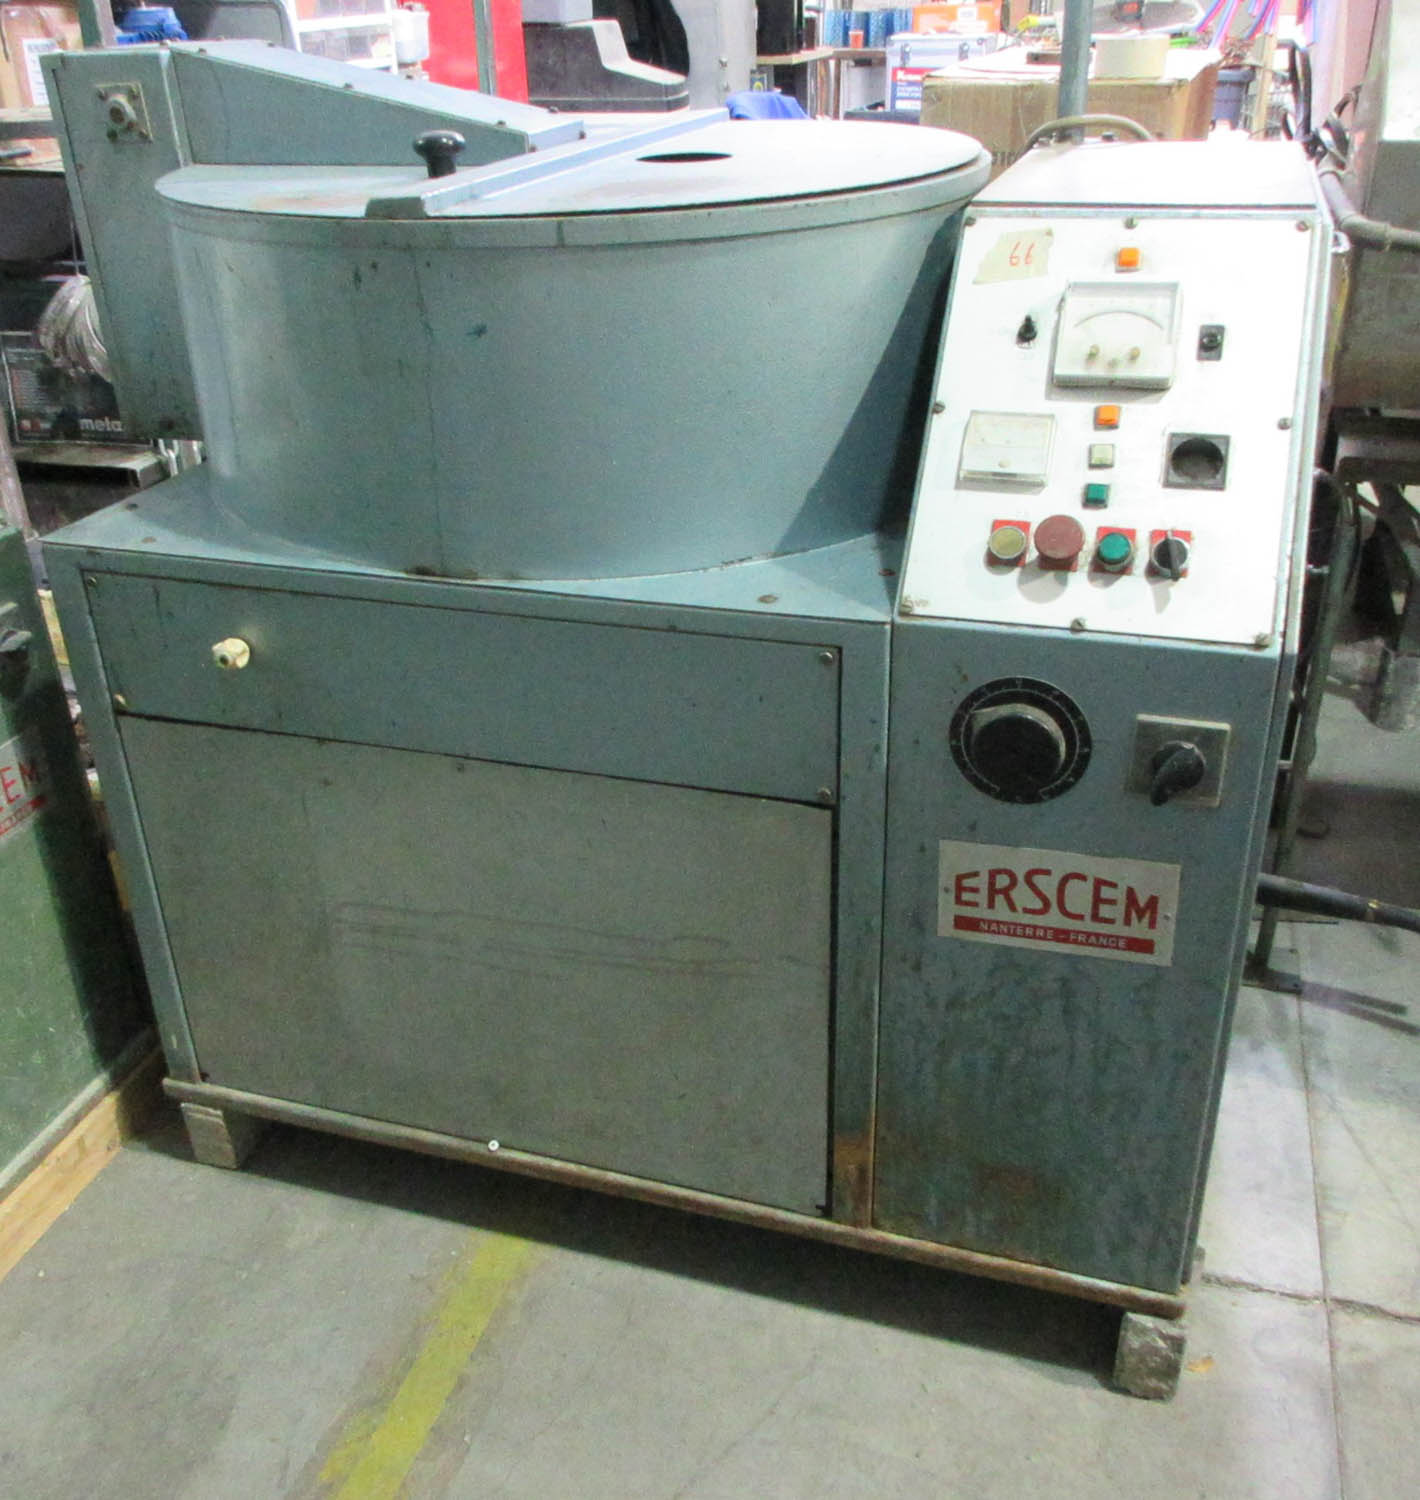 Lot 10 - ERSCEM KILN MDL. UC-20 ULTRA CAST CASTING MACHINE; 84 CM DIAMETER, S/N: 461 (1989) [A#66][LOCATED IN